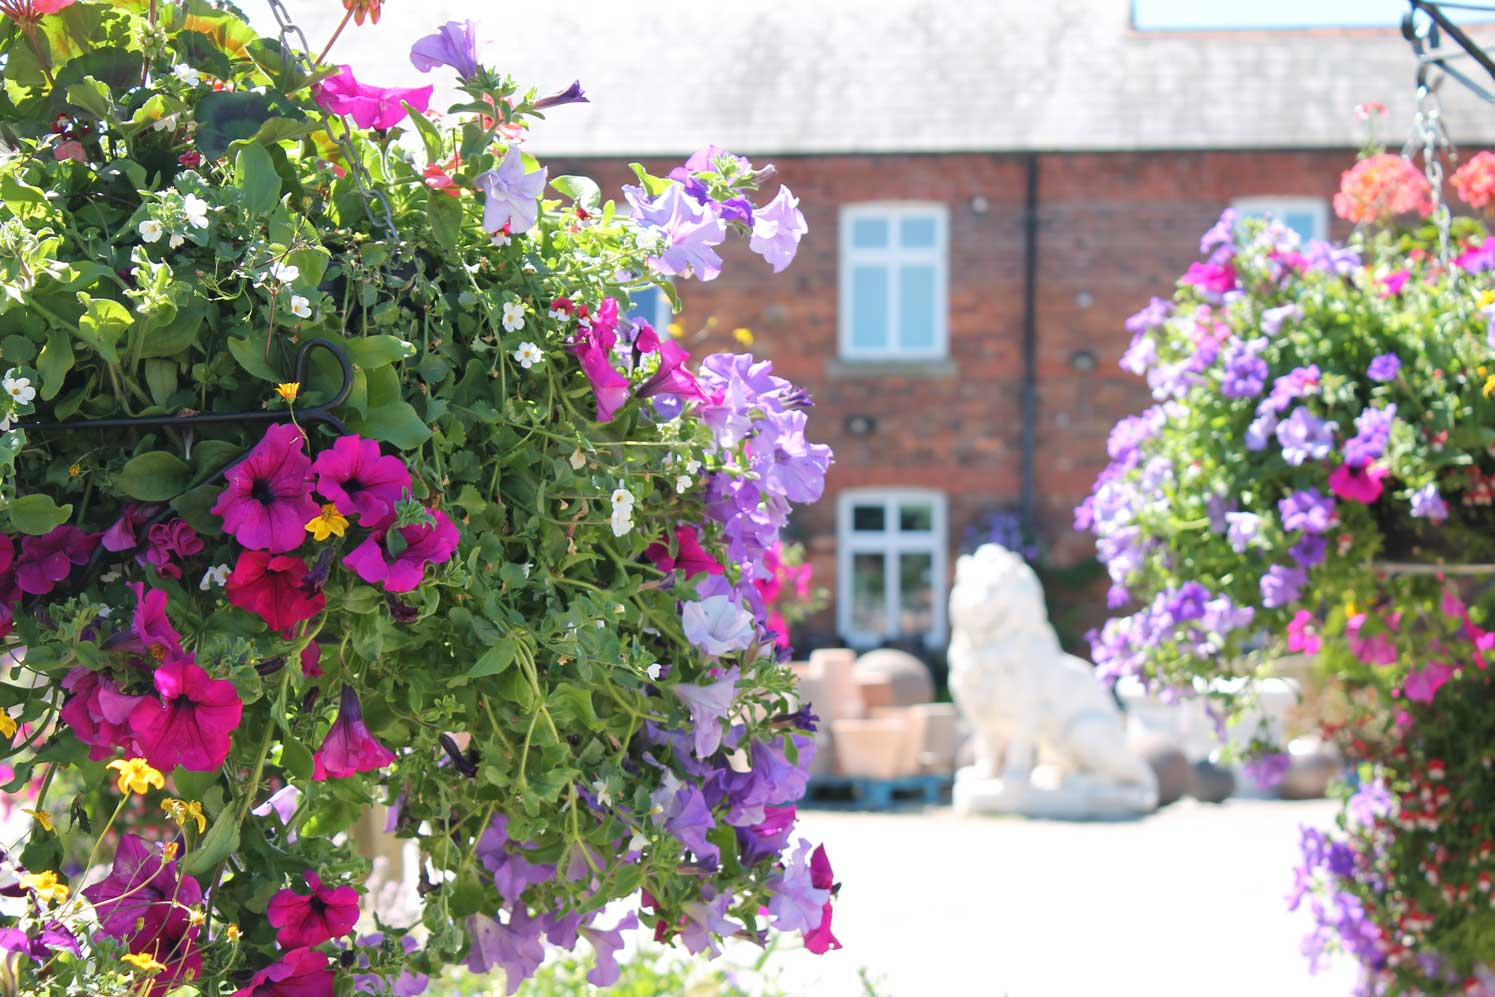 Hanging Baskets and Plants, The Pot Place Plumpton Cumbria